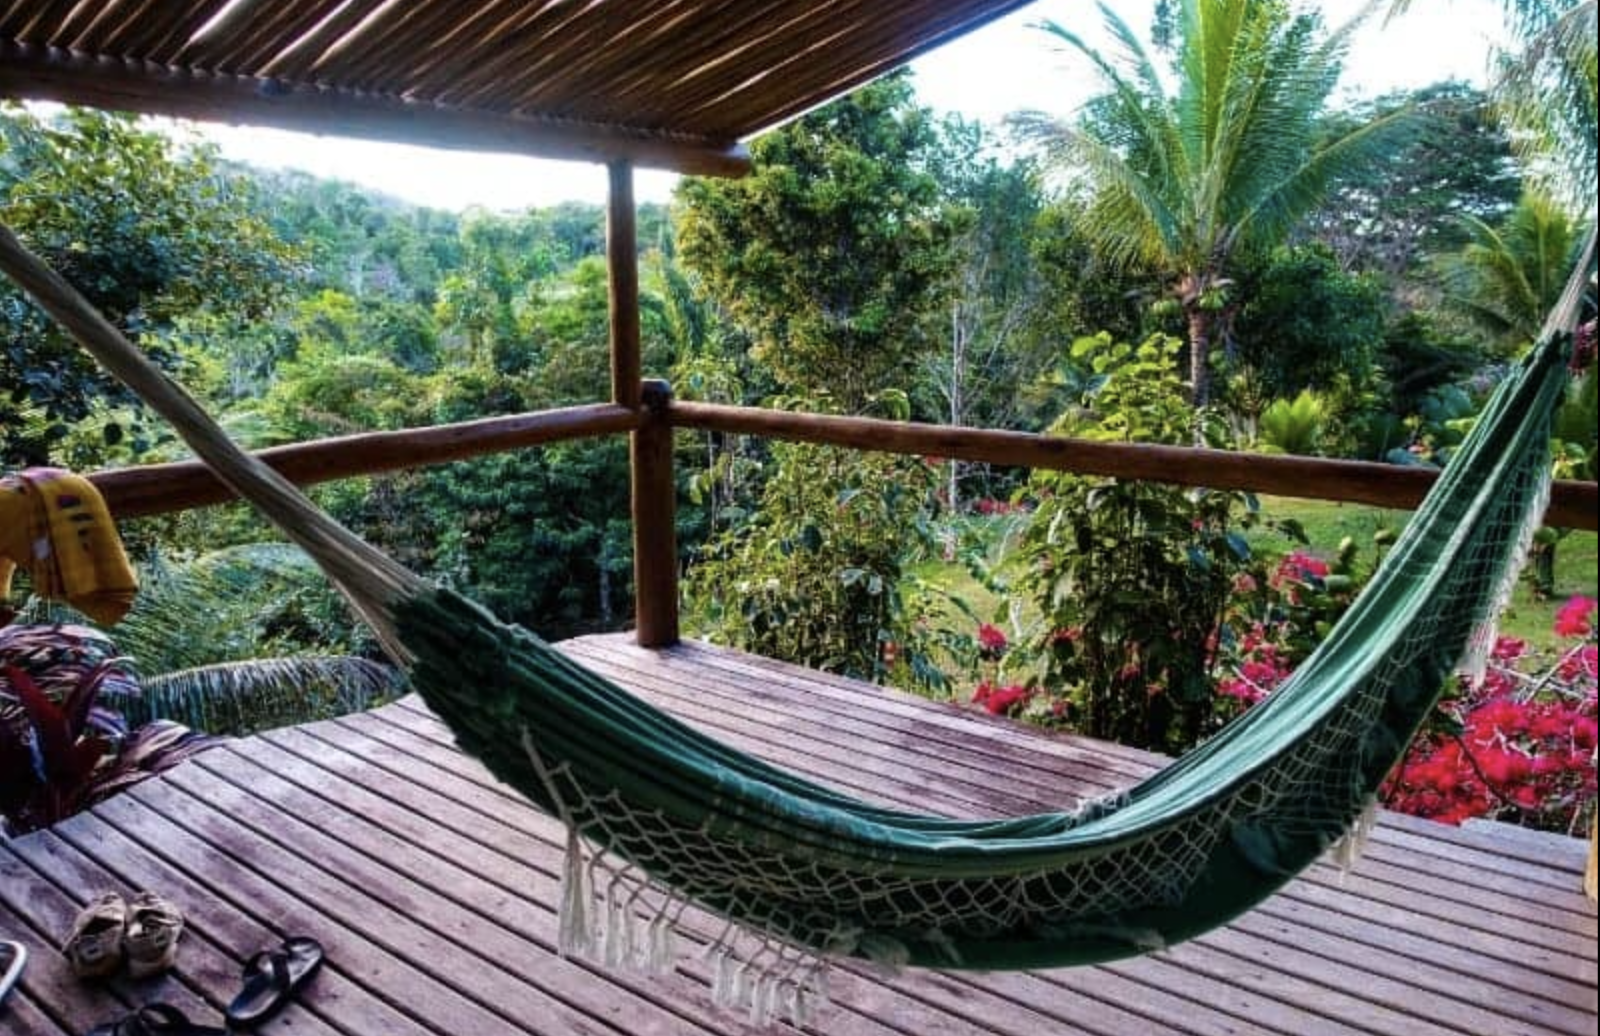 Spirit Vine Private Ayahuasca Retreats.Behold Retreats, a wellness company that specialises in the therapeutic use of plant-based medicine to aid in personal and spiritual growth. Plant medicine luxury retreat, ayahuasca, psychedelics, psilocybin, 5-meo DMT. Science, infographics, research